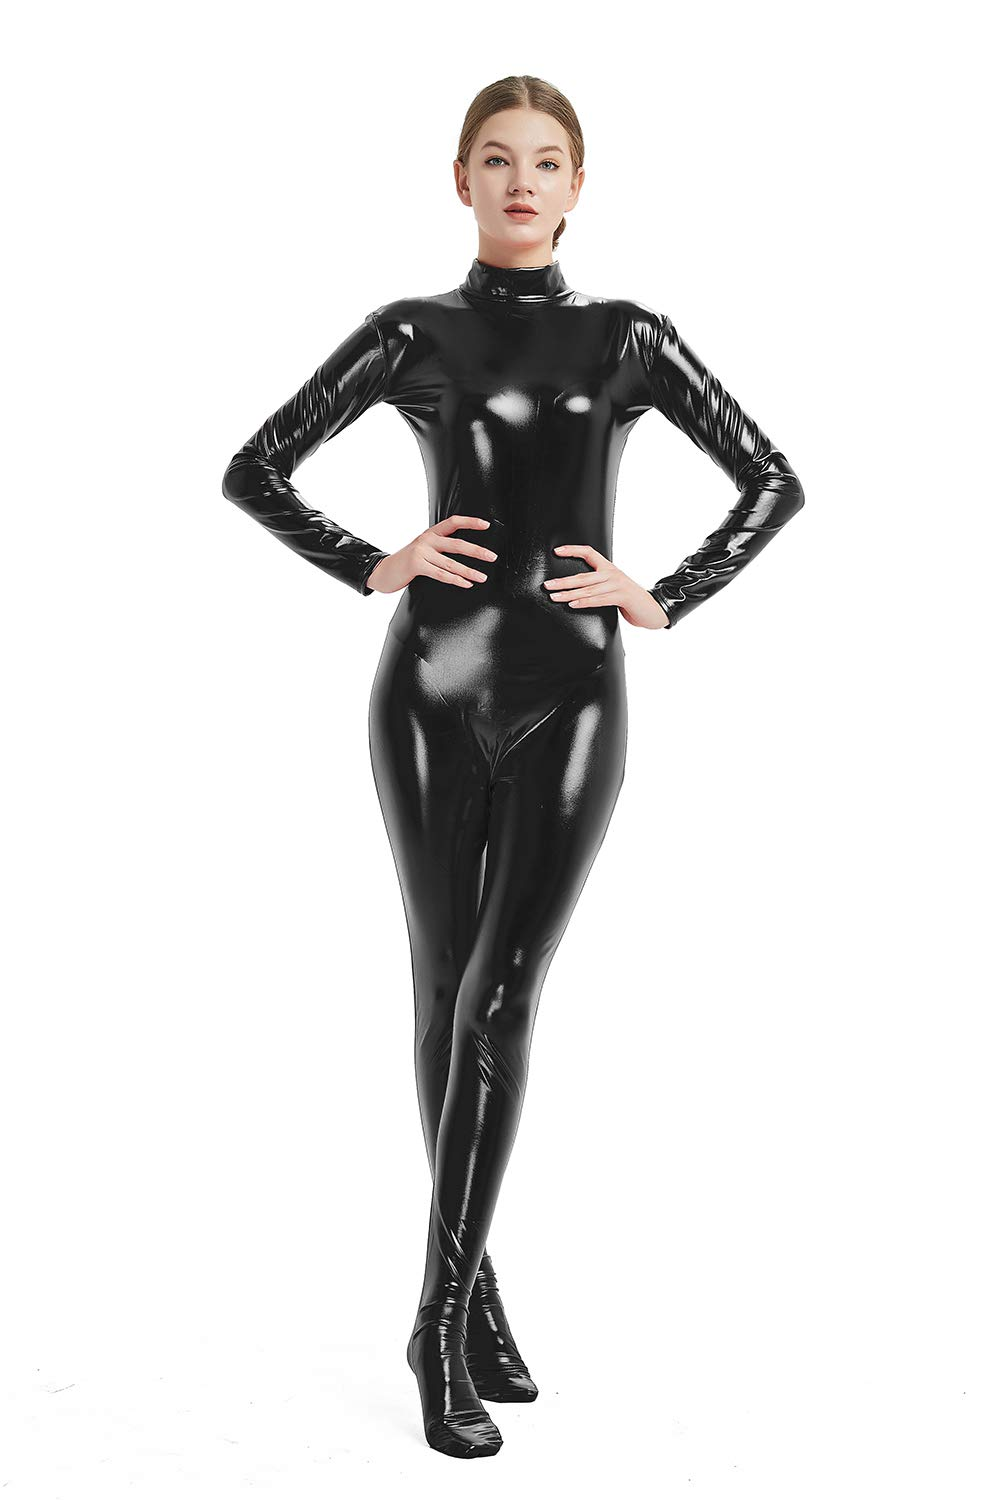 Full Bodysuit Womens Shiny Metallic Without Hood and Gloves Back Zipper Lycra Adult Costume Zentai 61IxzgxOO8L